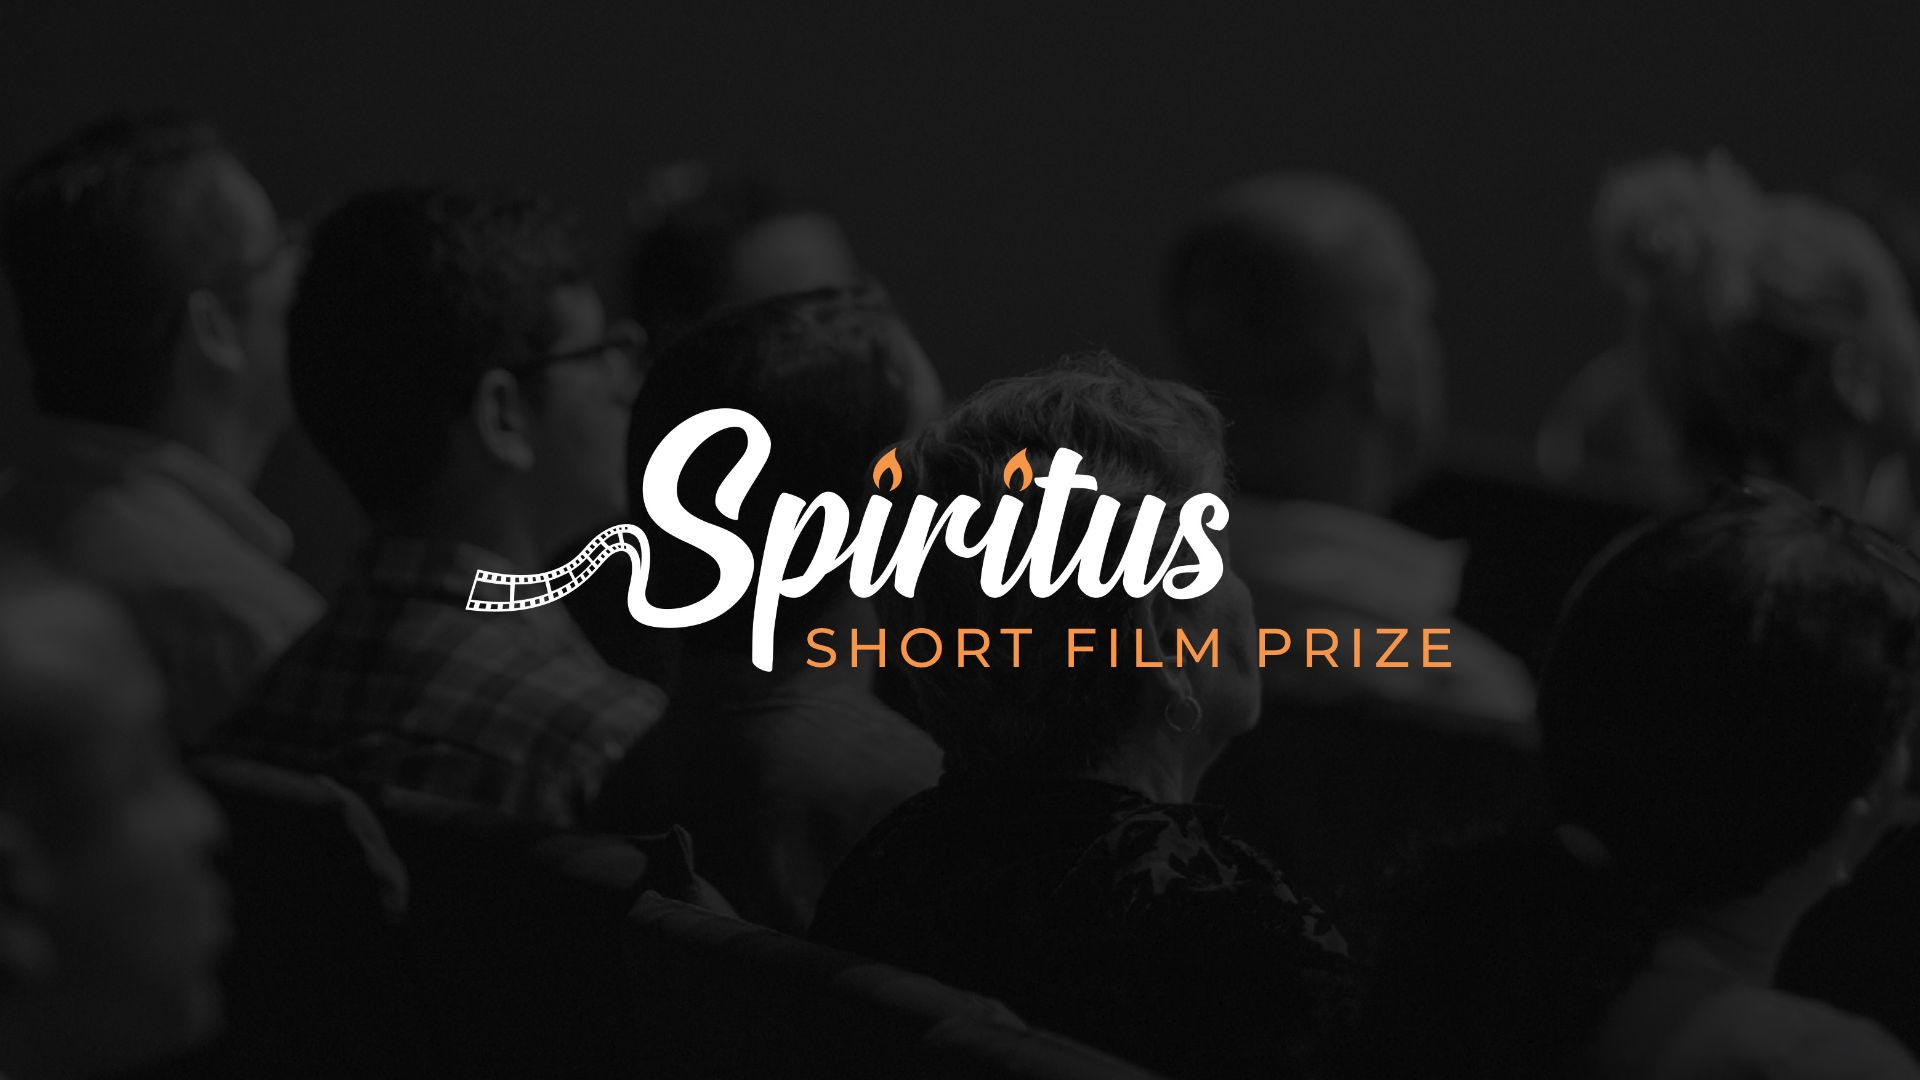 Spiritus Short Film Prize; enter now